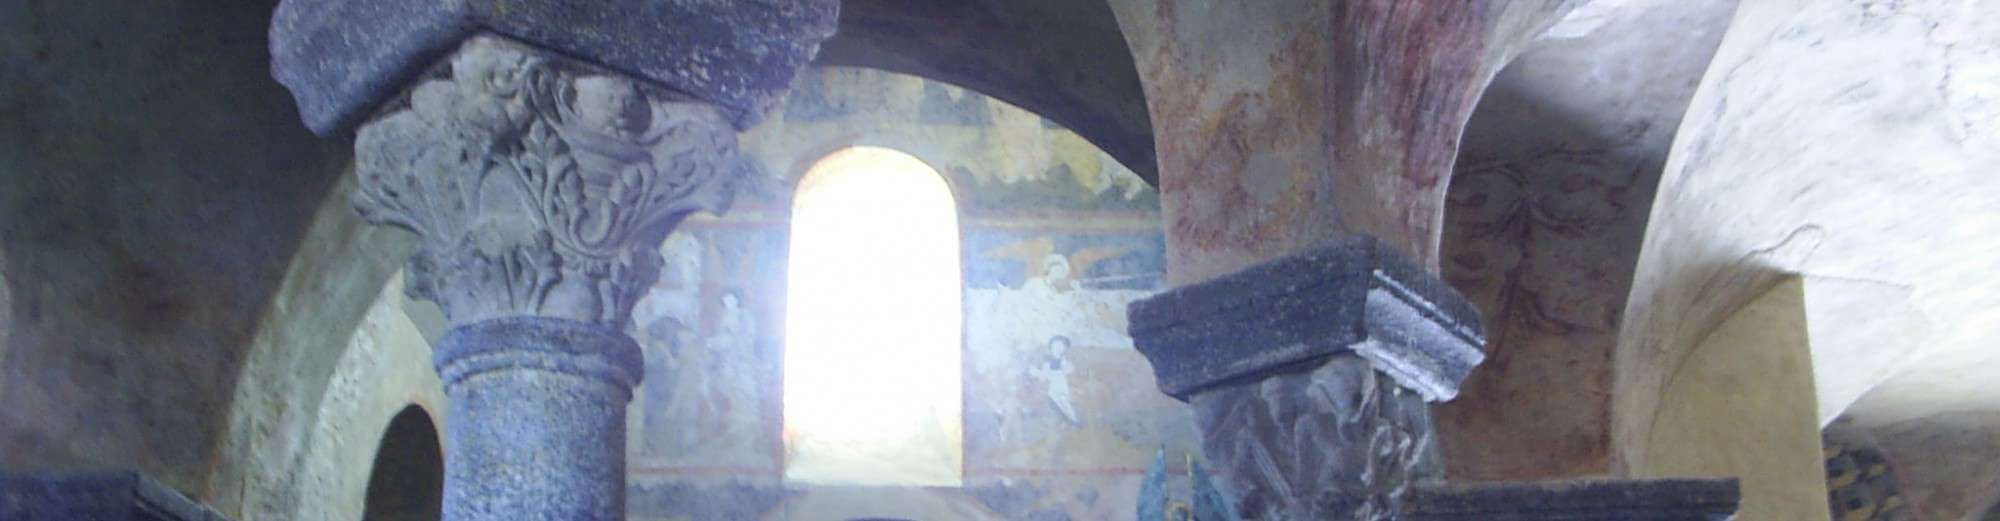 Interieur kapel Saint Michel d'Aiguilhe in Le Puy en Velay